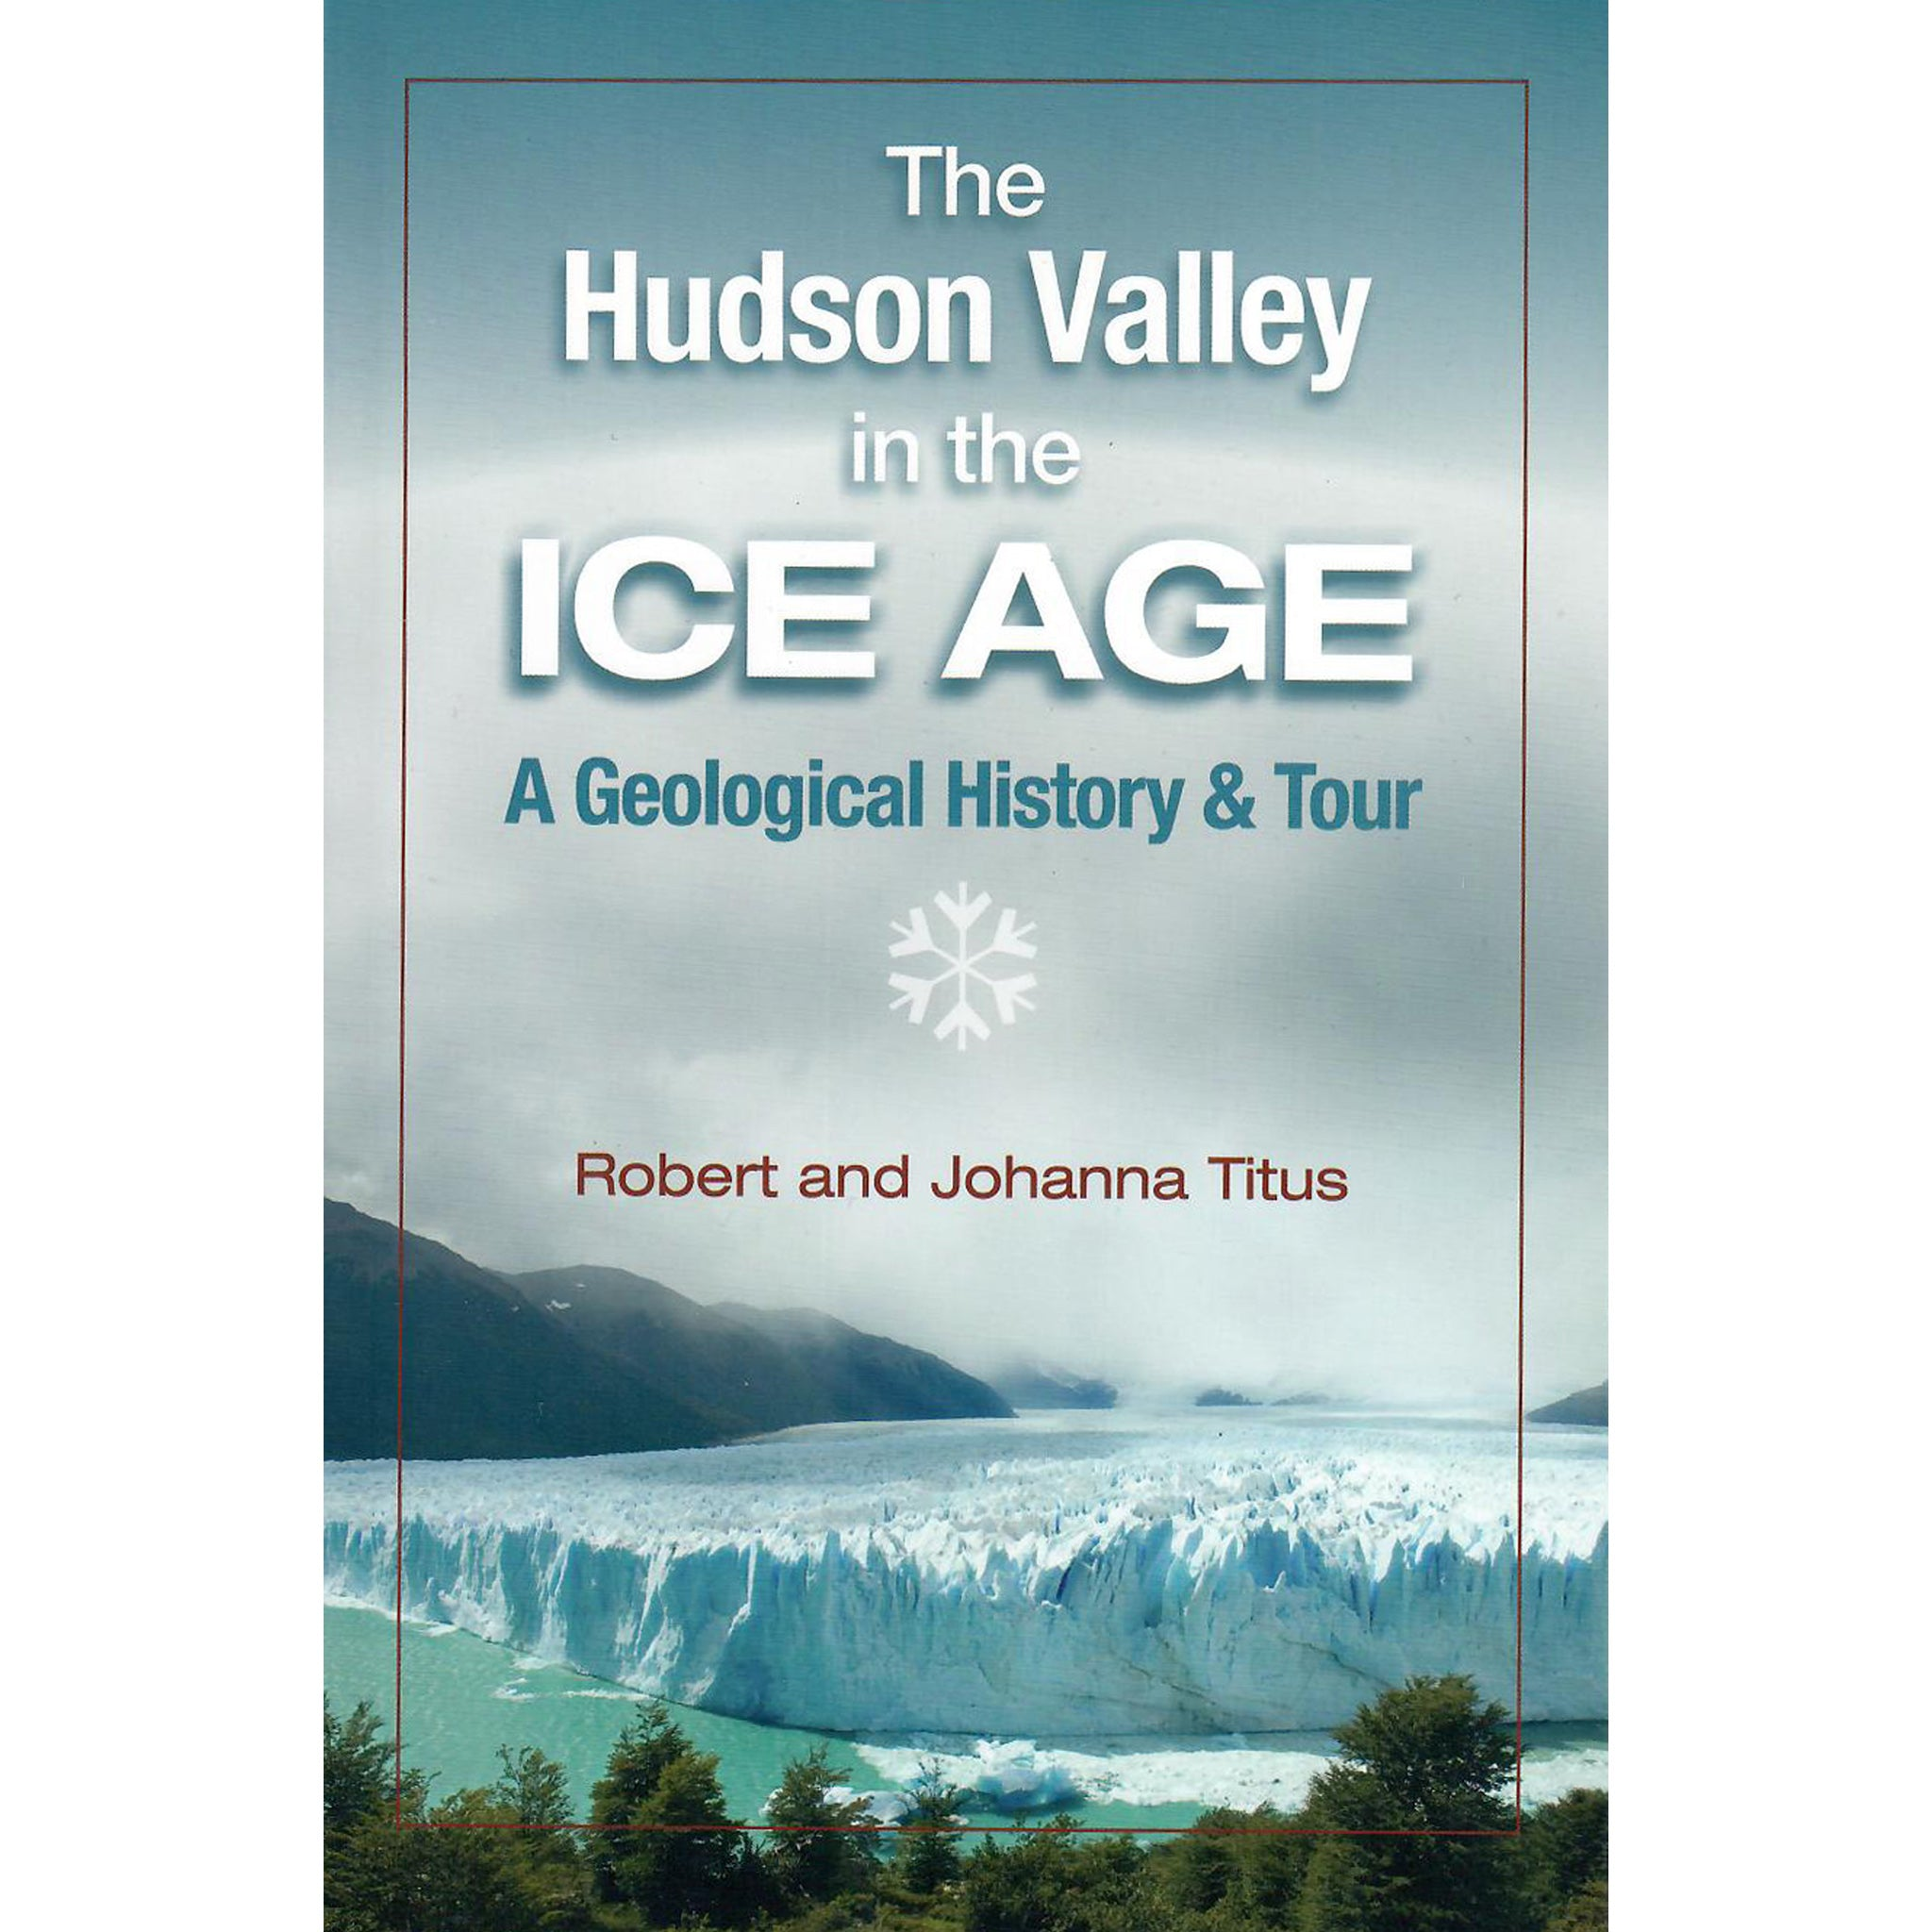 The Hudson Valley in the Ice Age